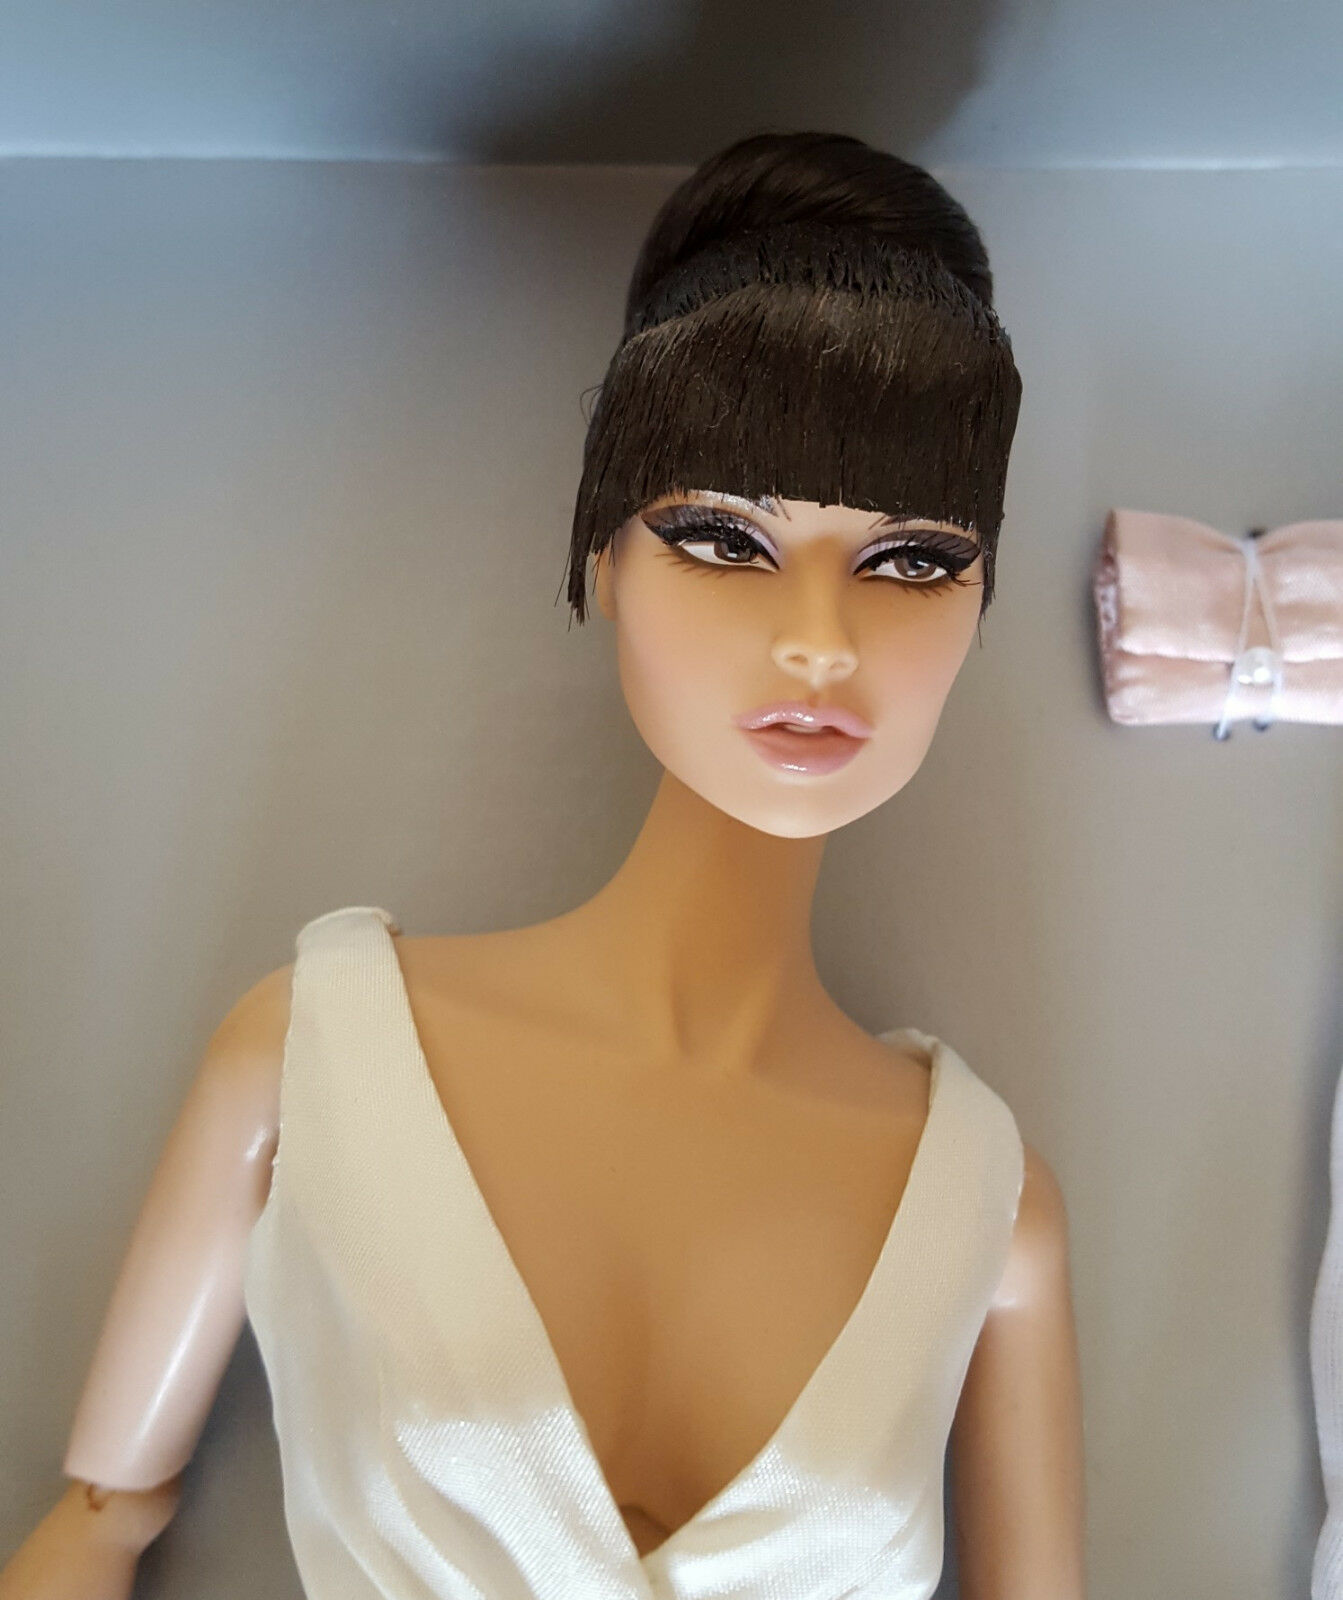 FASHION ROYALTY Vanessa Perrin RE-EDITION LUXE LIFE NRFB Doll 132/350 JasonW exc